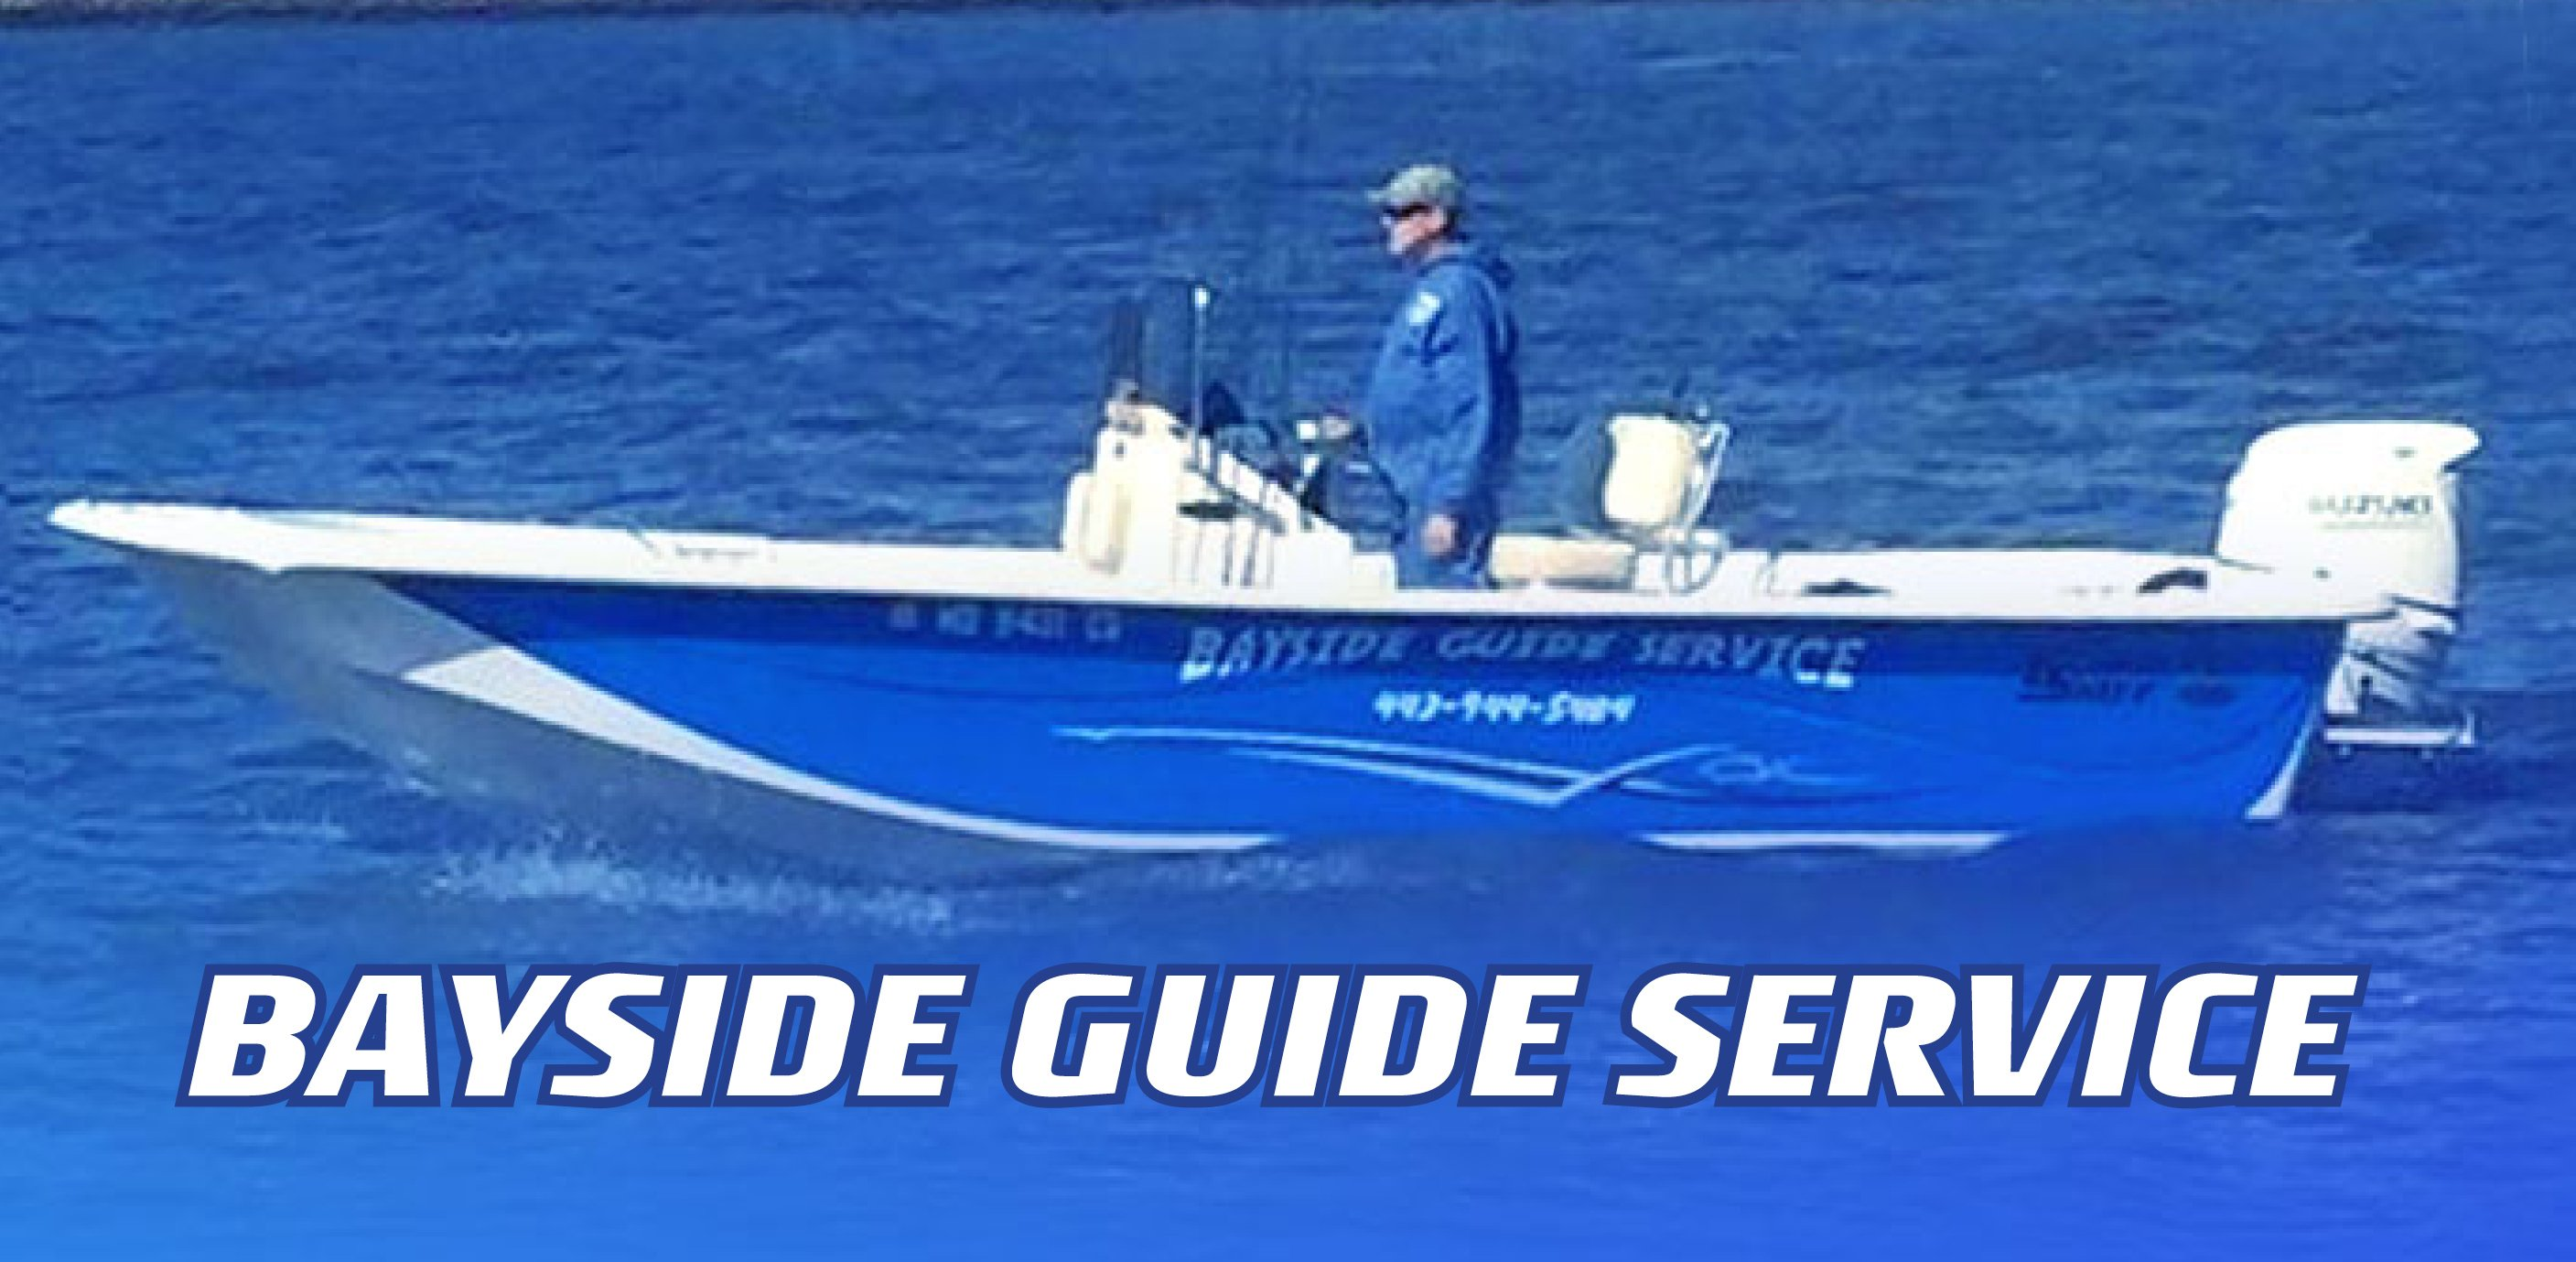 Bayside Guide Service